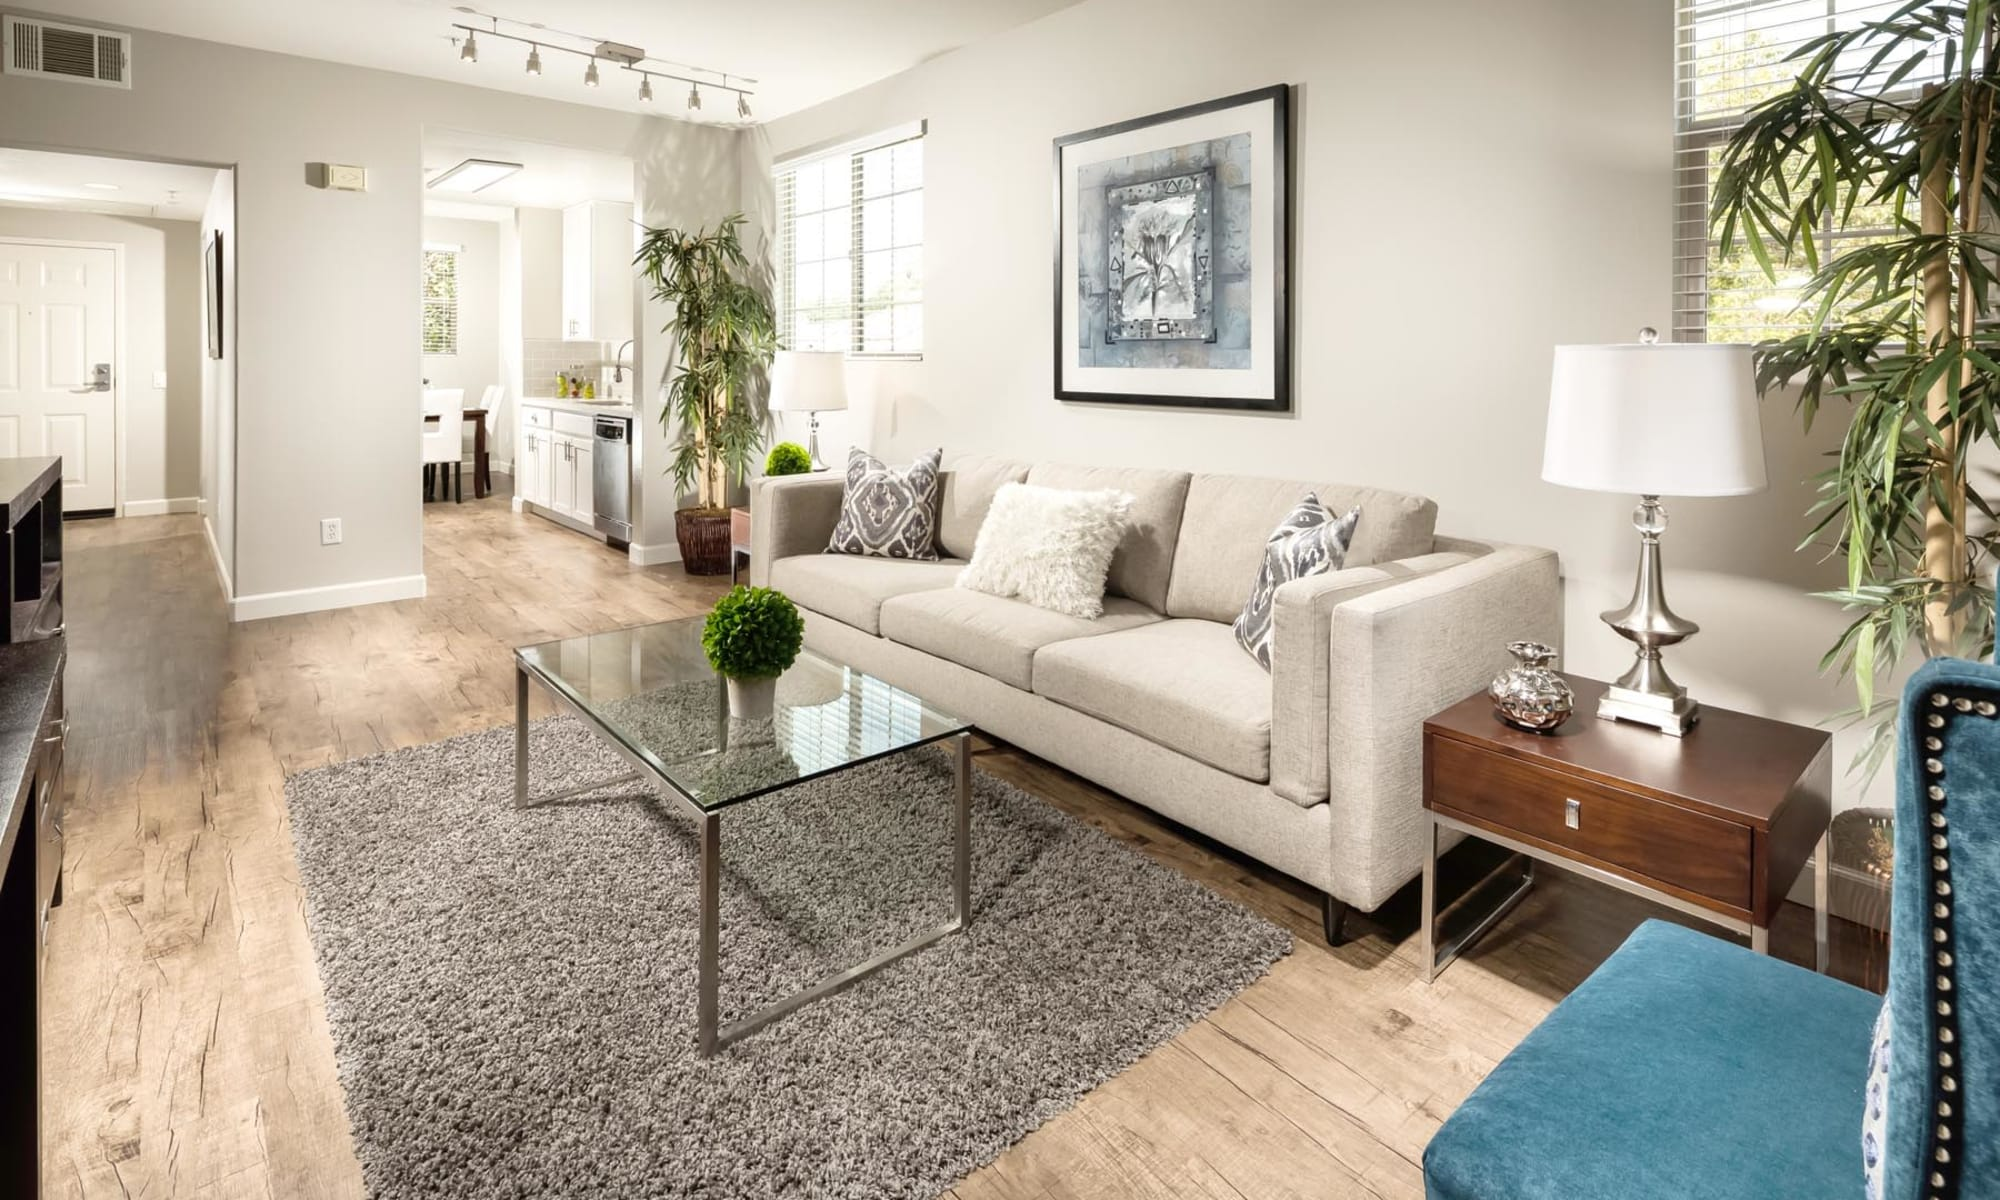 Well-furnished living area in a model apartment at Mission Hills in Camarillo, California